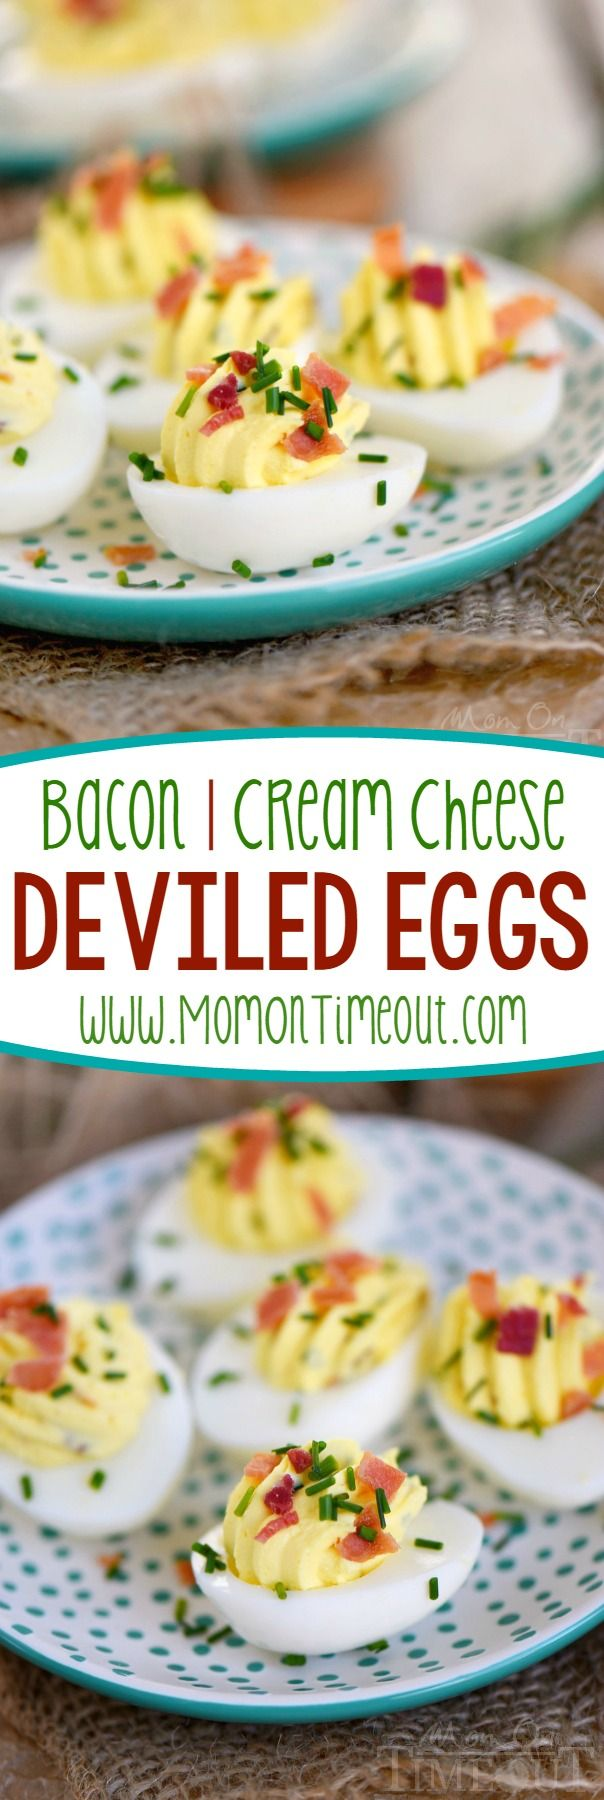 Bacon Cream Cheese Deviled Eggs are delightfully creamy and perfectly savory with the addition of bacon and chives! Double the batch because these won't last long! The perfect appetizer for picnics, BBQ's and parties!